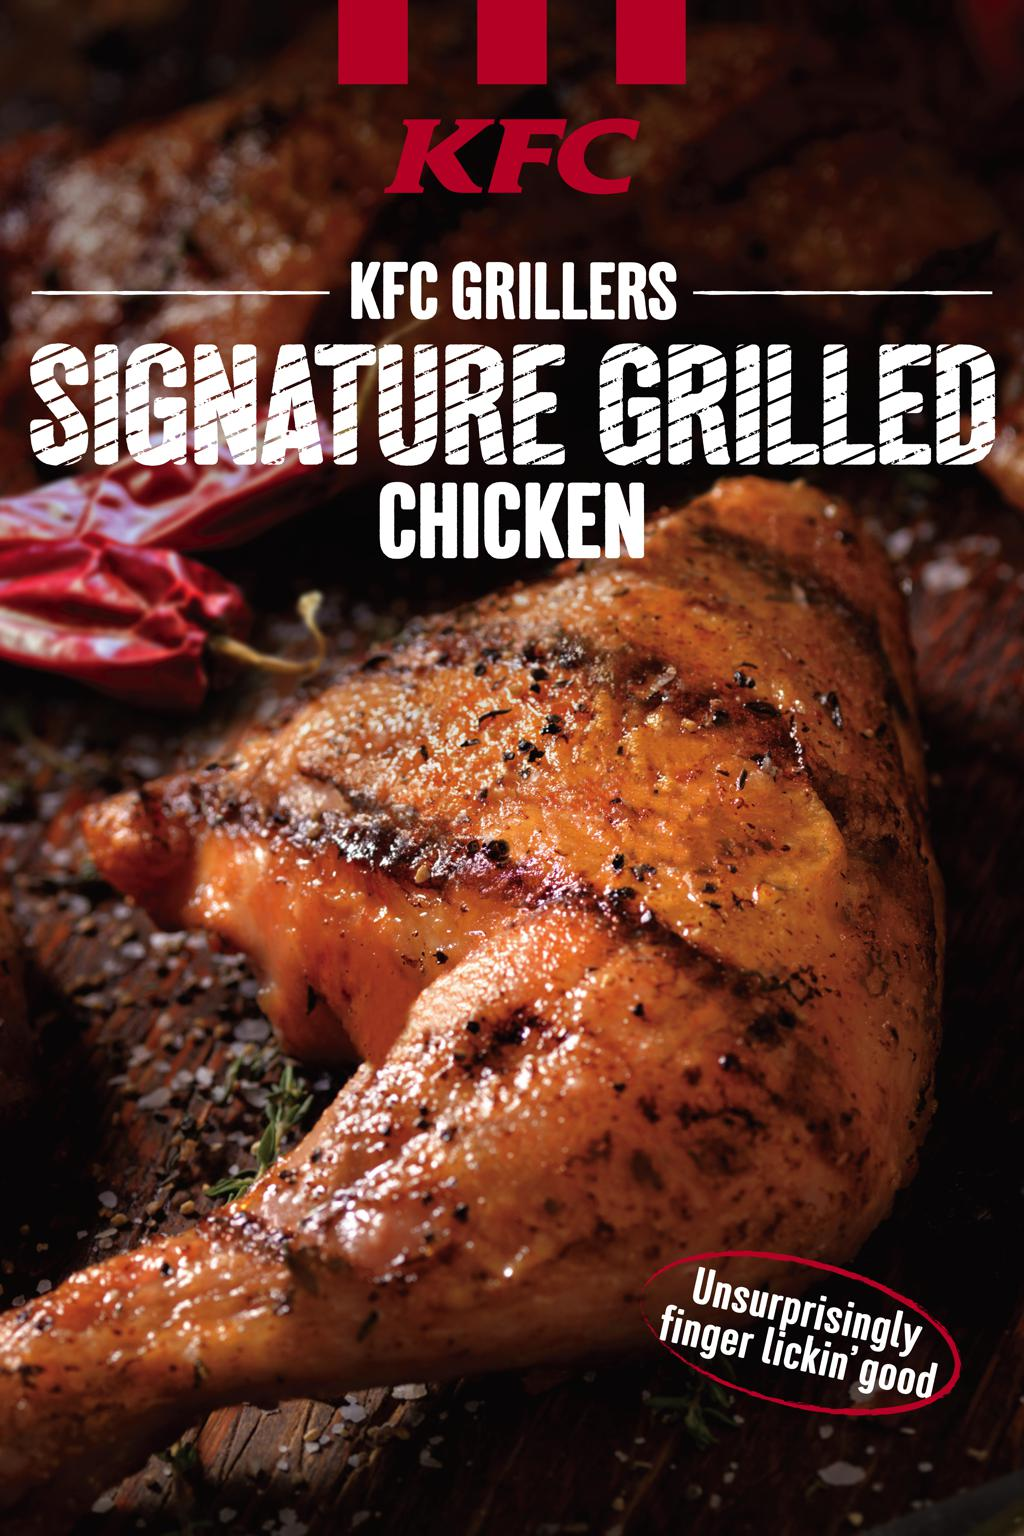 New KFC healthy menu with grilled chicken and mesclun salad starting Aug 1 - Alvinology